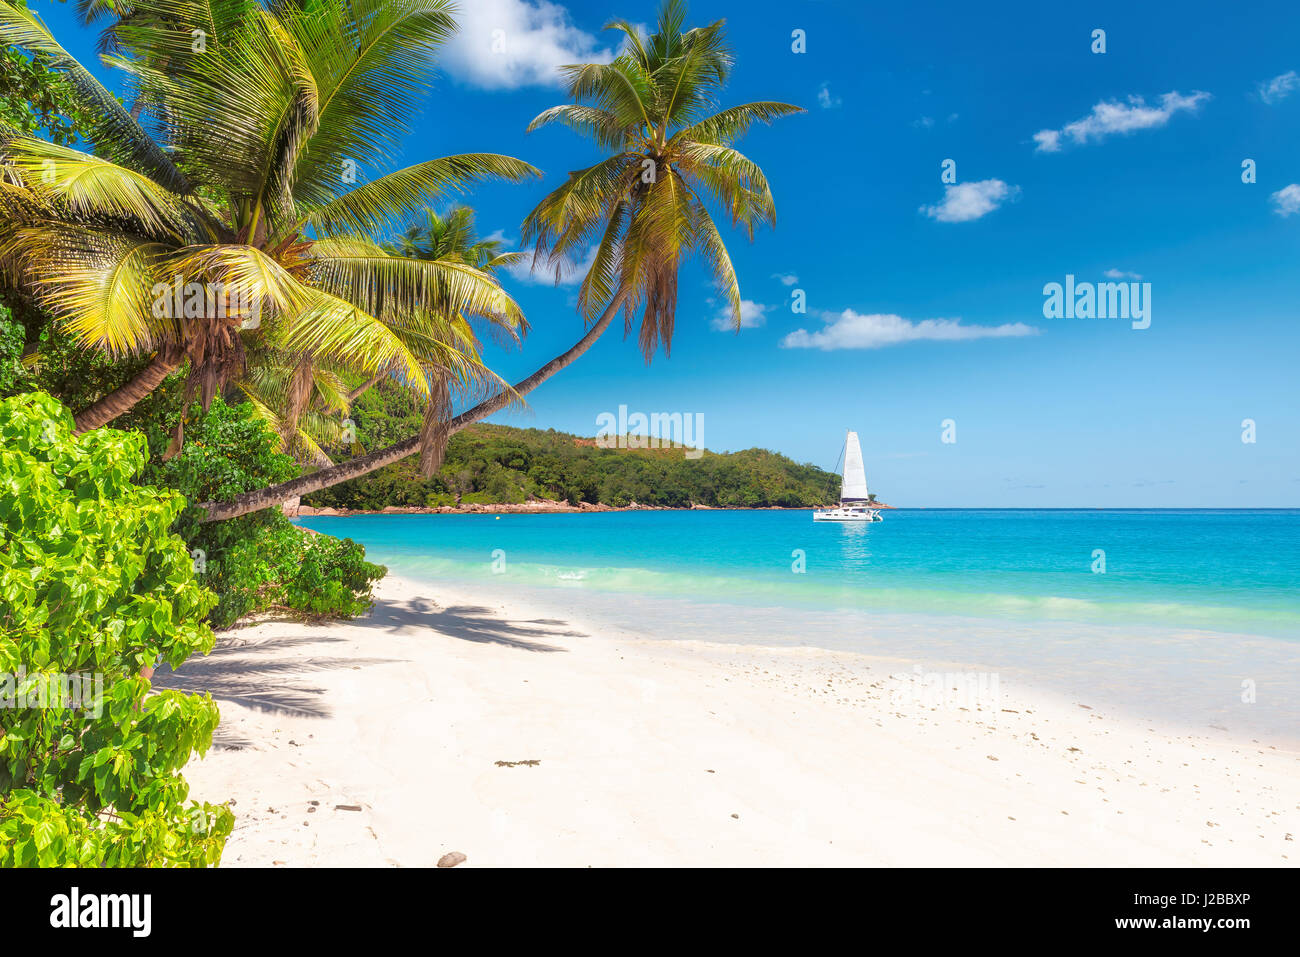 Tropical ocean beach with white sand, coconut palm trees, transparent turquoise water and sailing yacht in bright - Stock Image